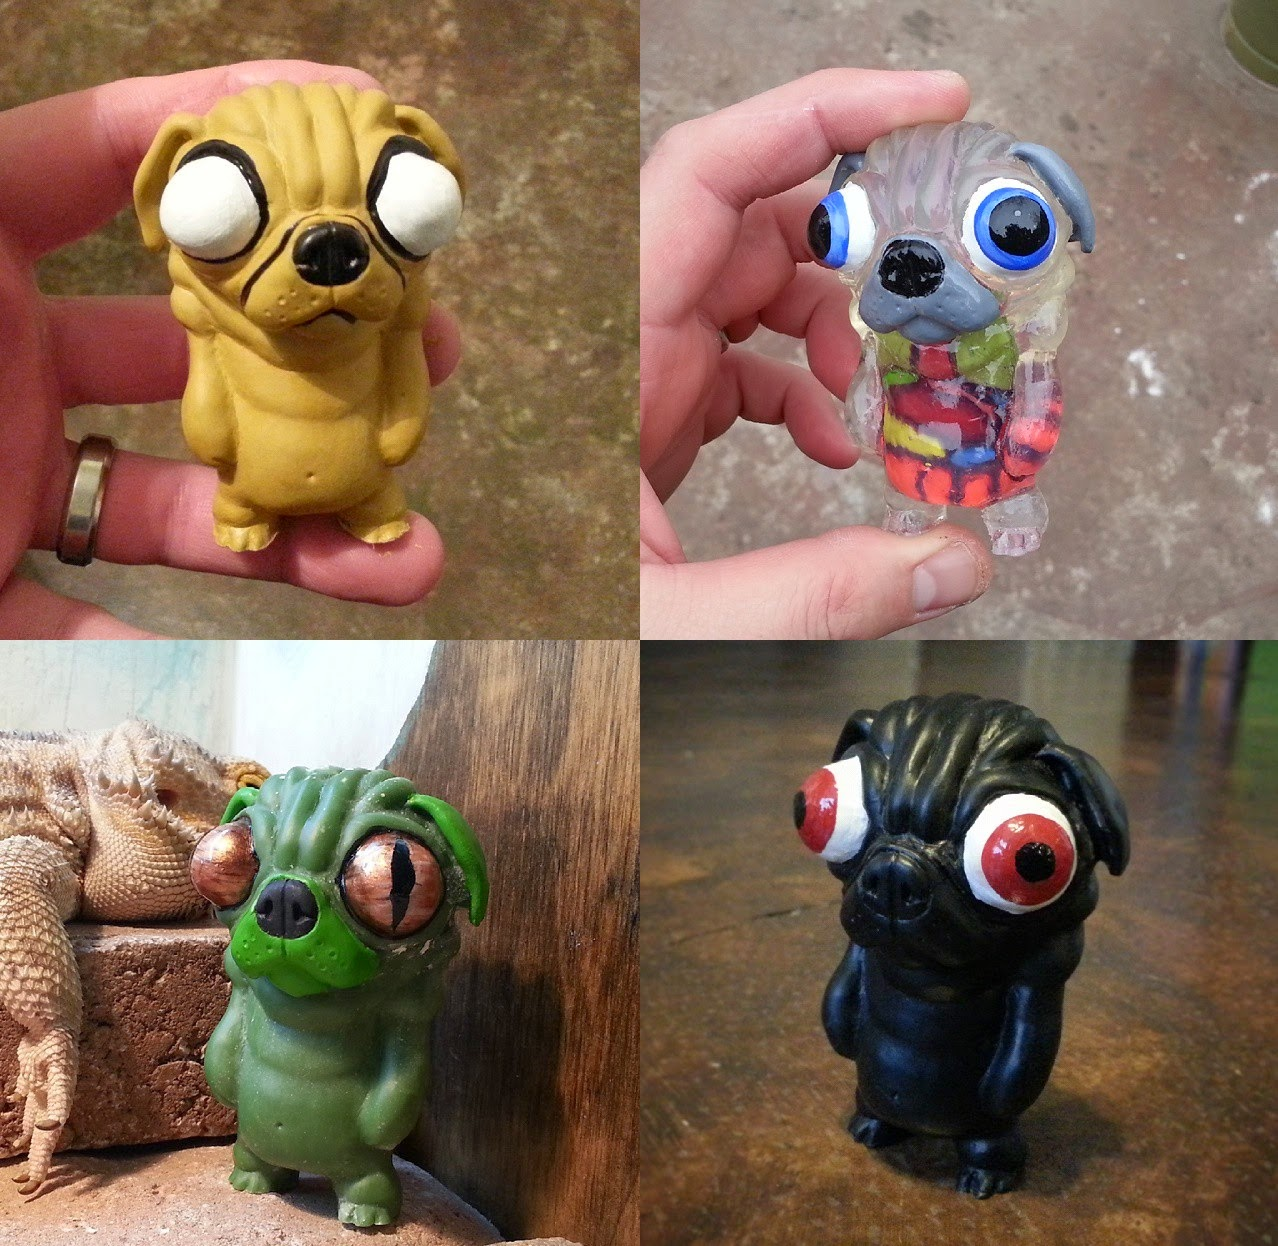 Puggo Resin Figure by Motorbot - Adventure Time Edition, Visible Edition, Lizard Edition & Black Edition